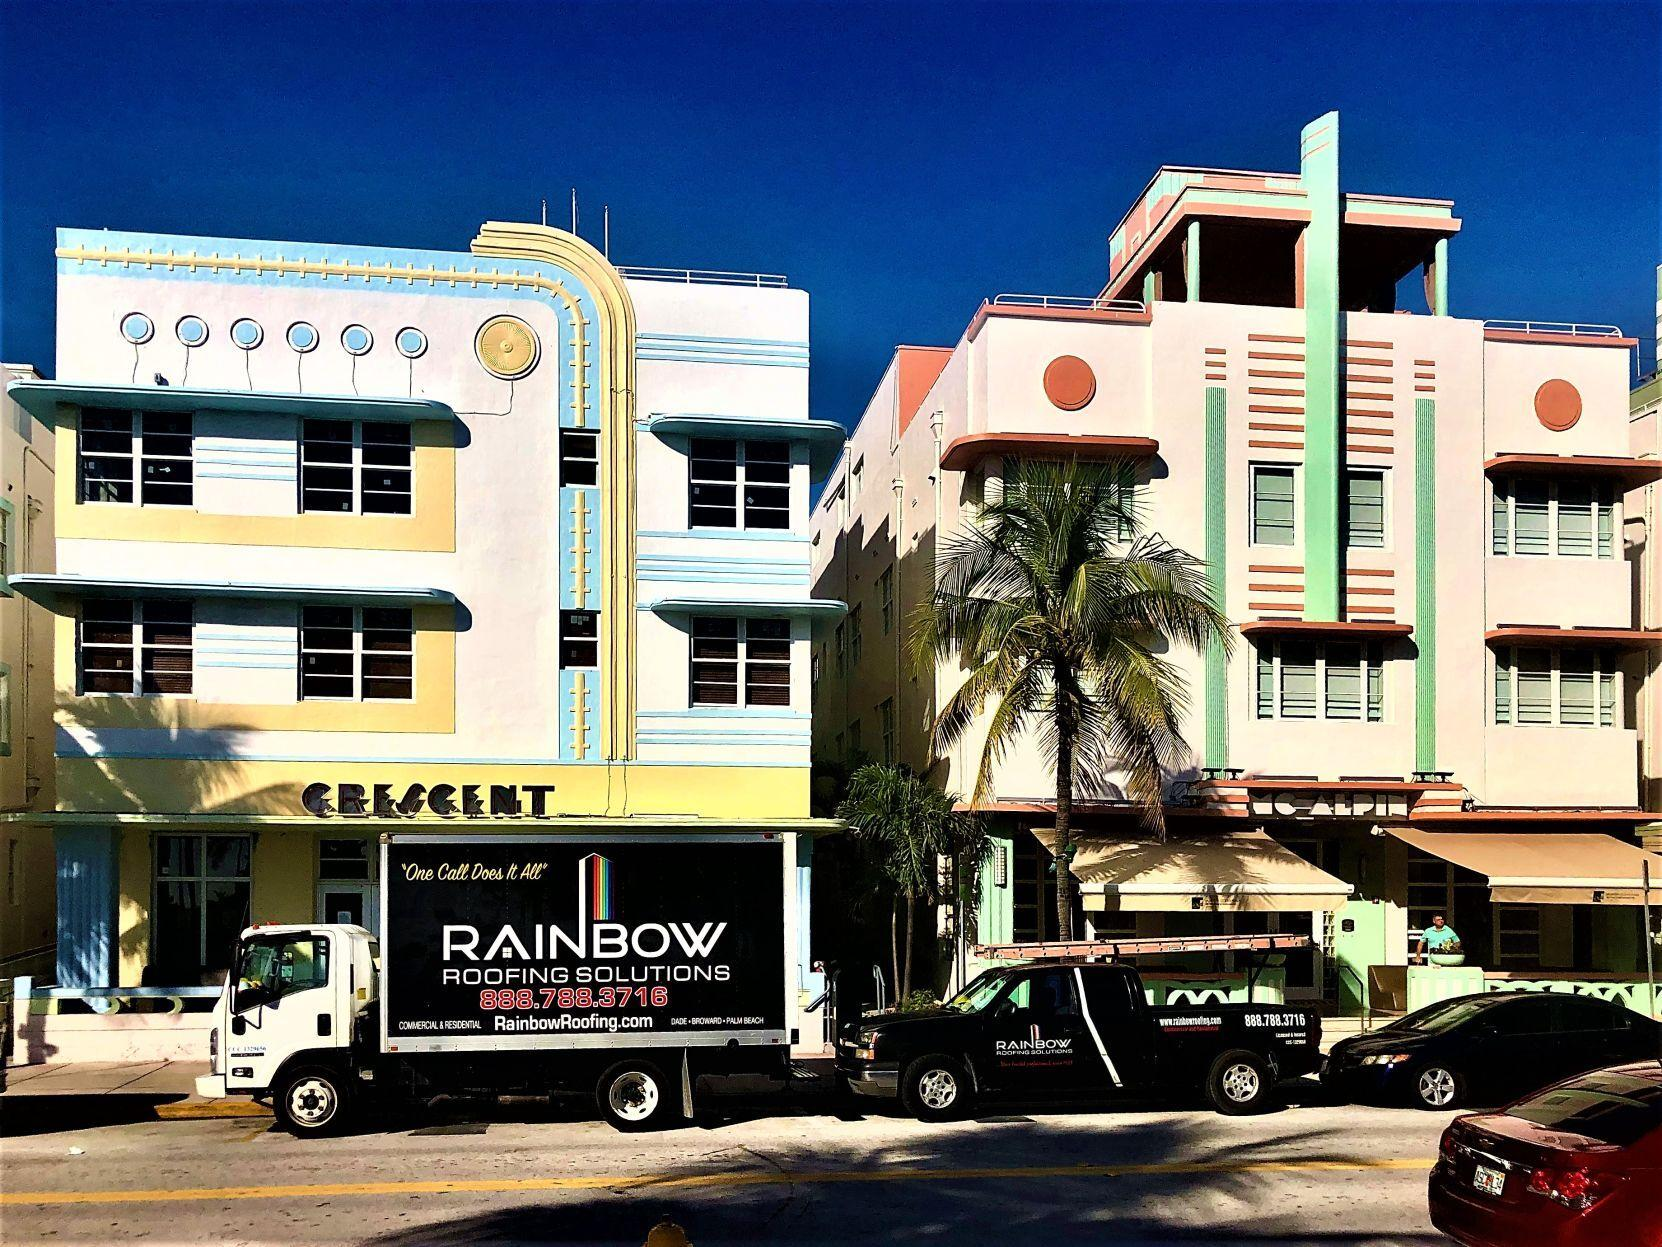 Covid Safe Travel See Art Deco Buildings In South Miami Beach Florida L Magazine Journalstar Com